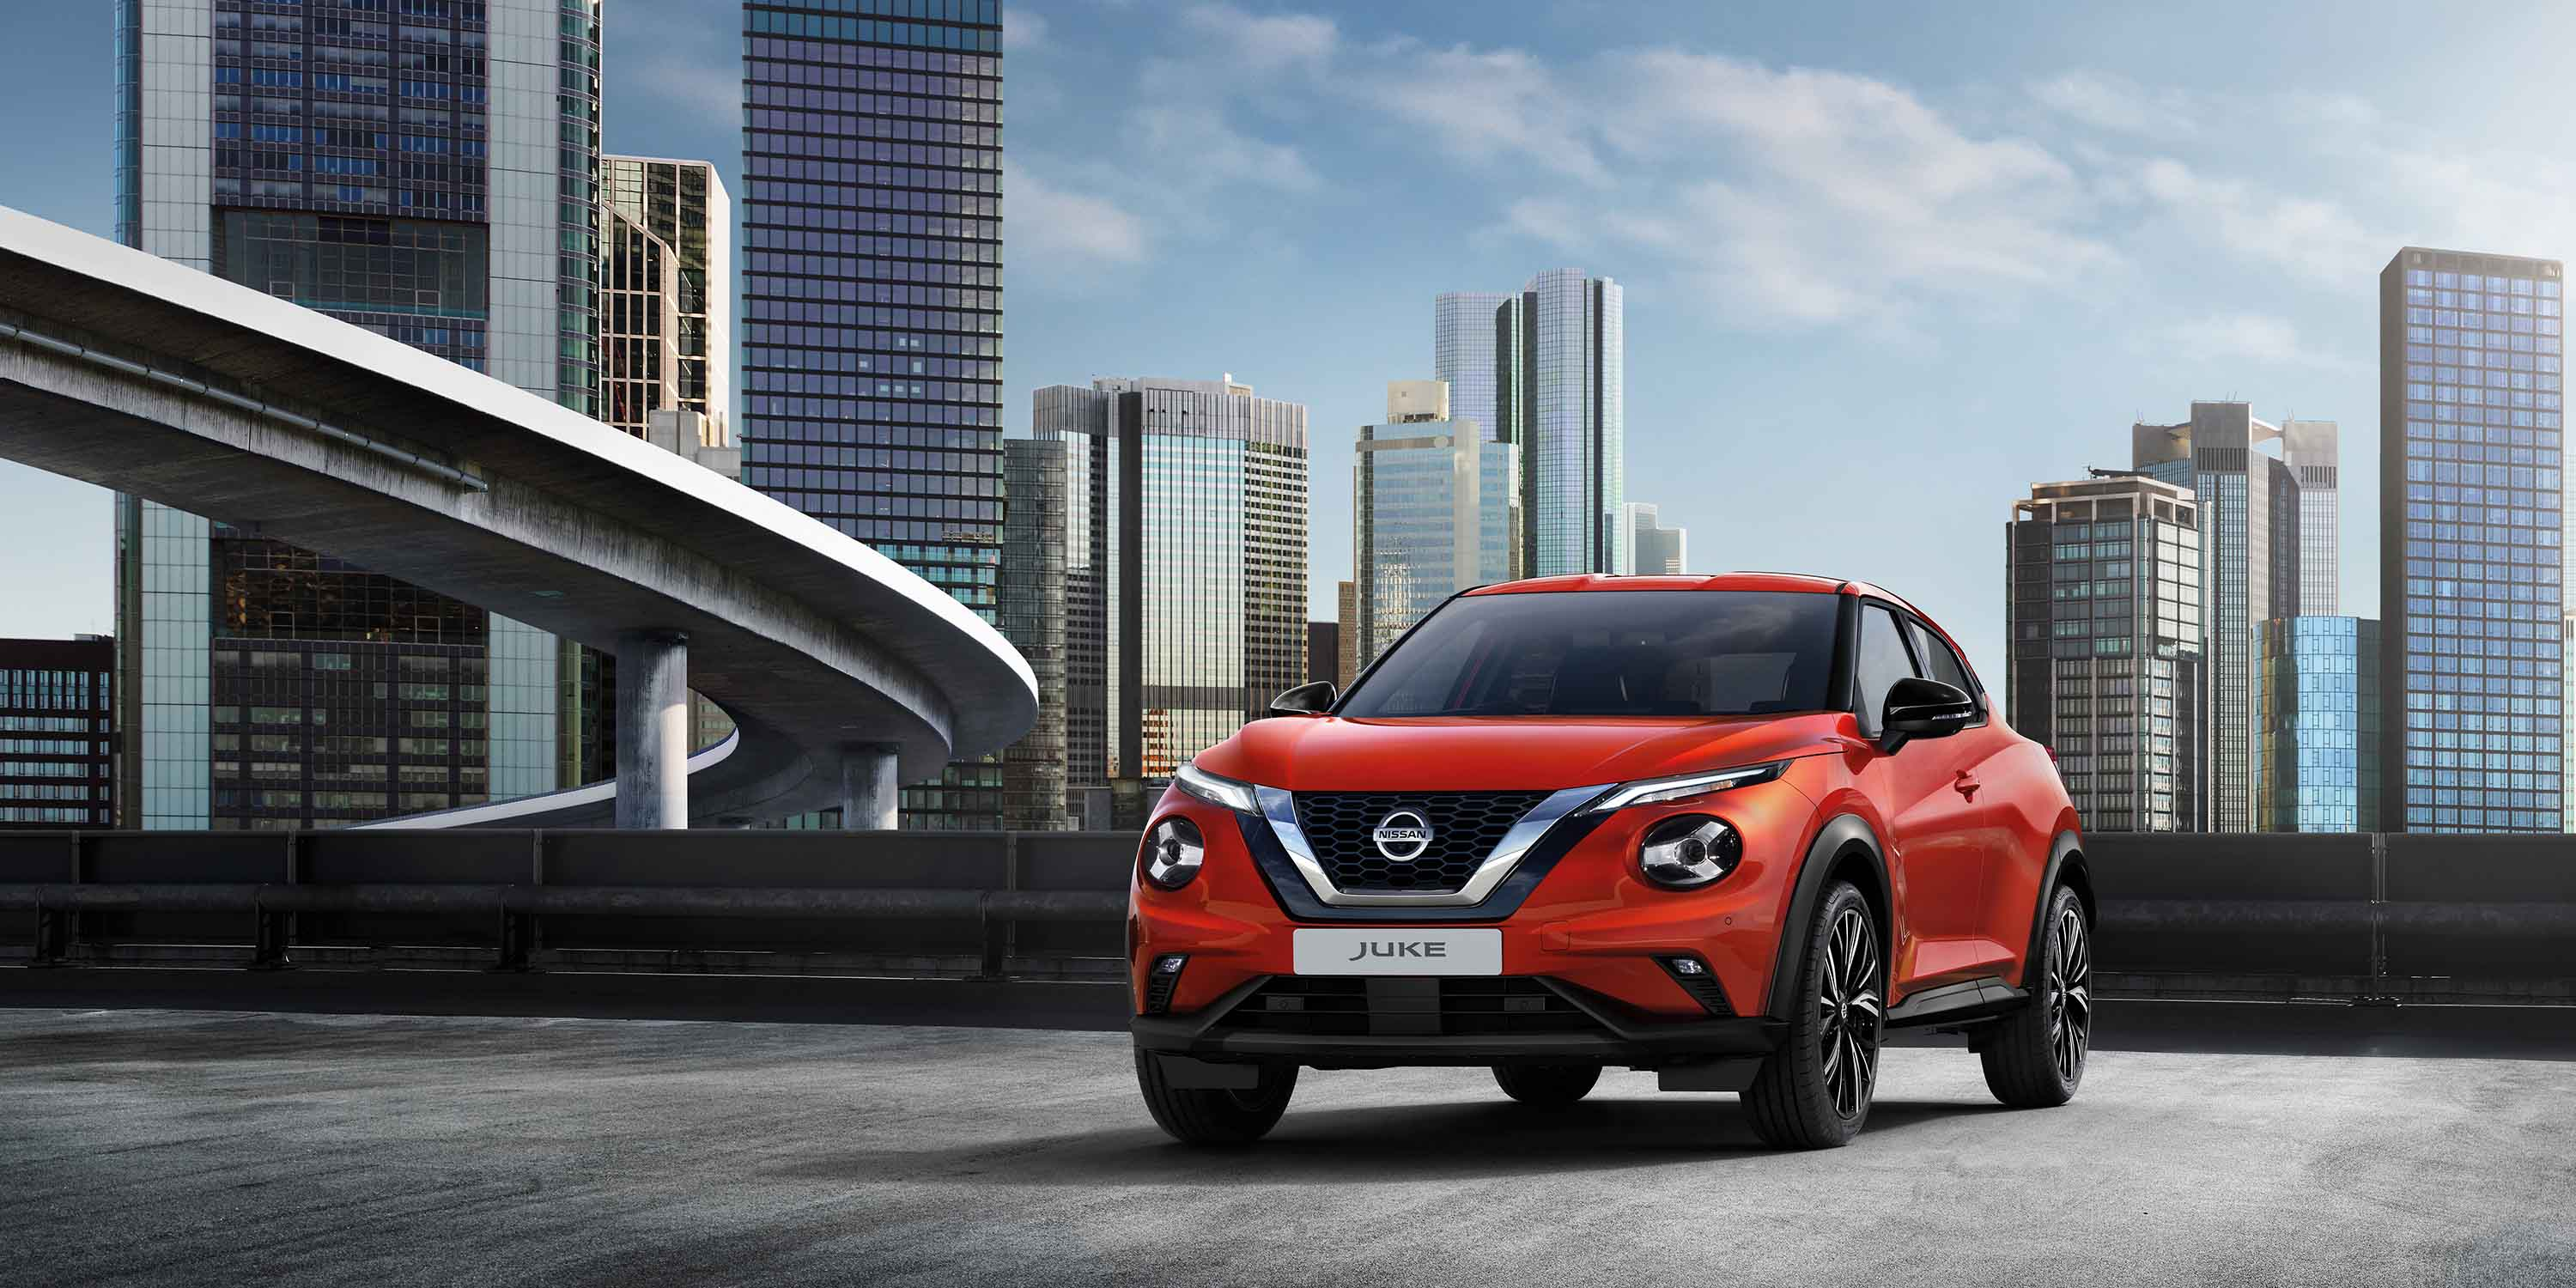 all-new-juke-nissan-image